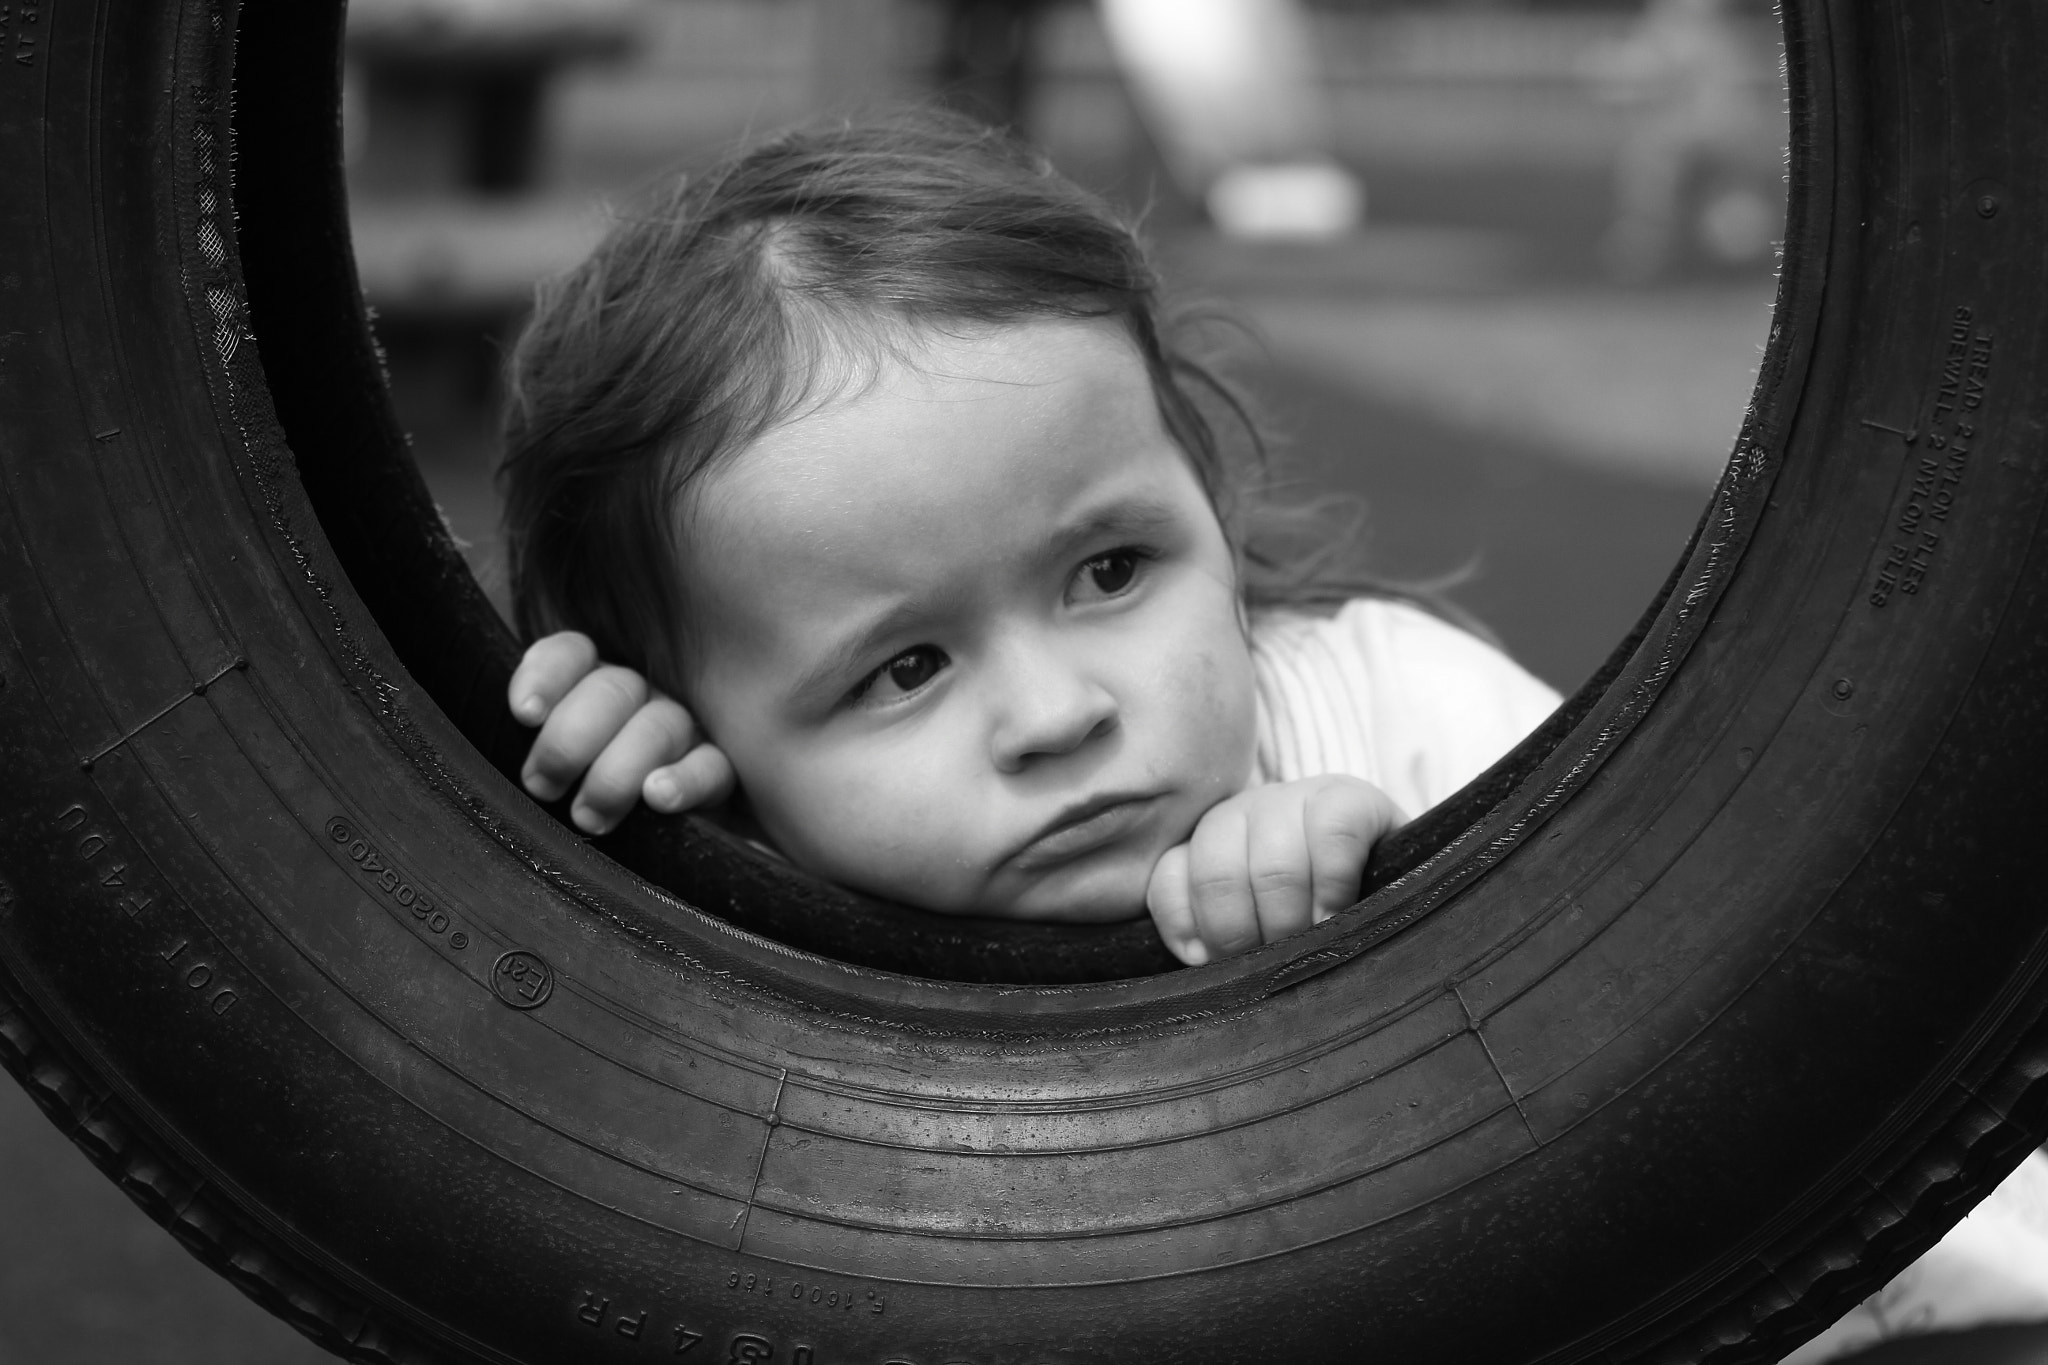 Photograph Through the tyre by Graham Self on 500px